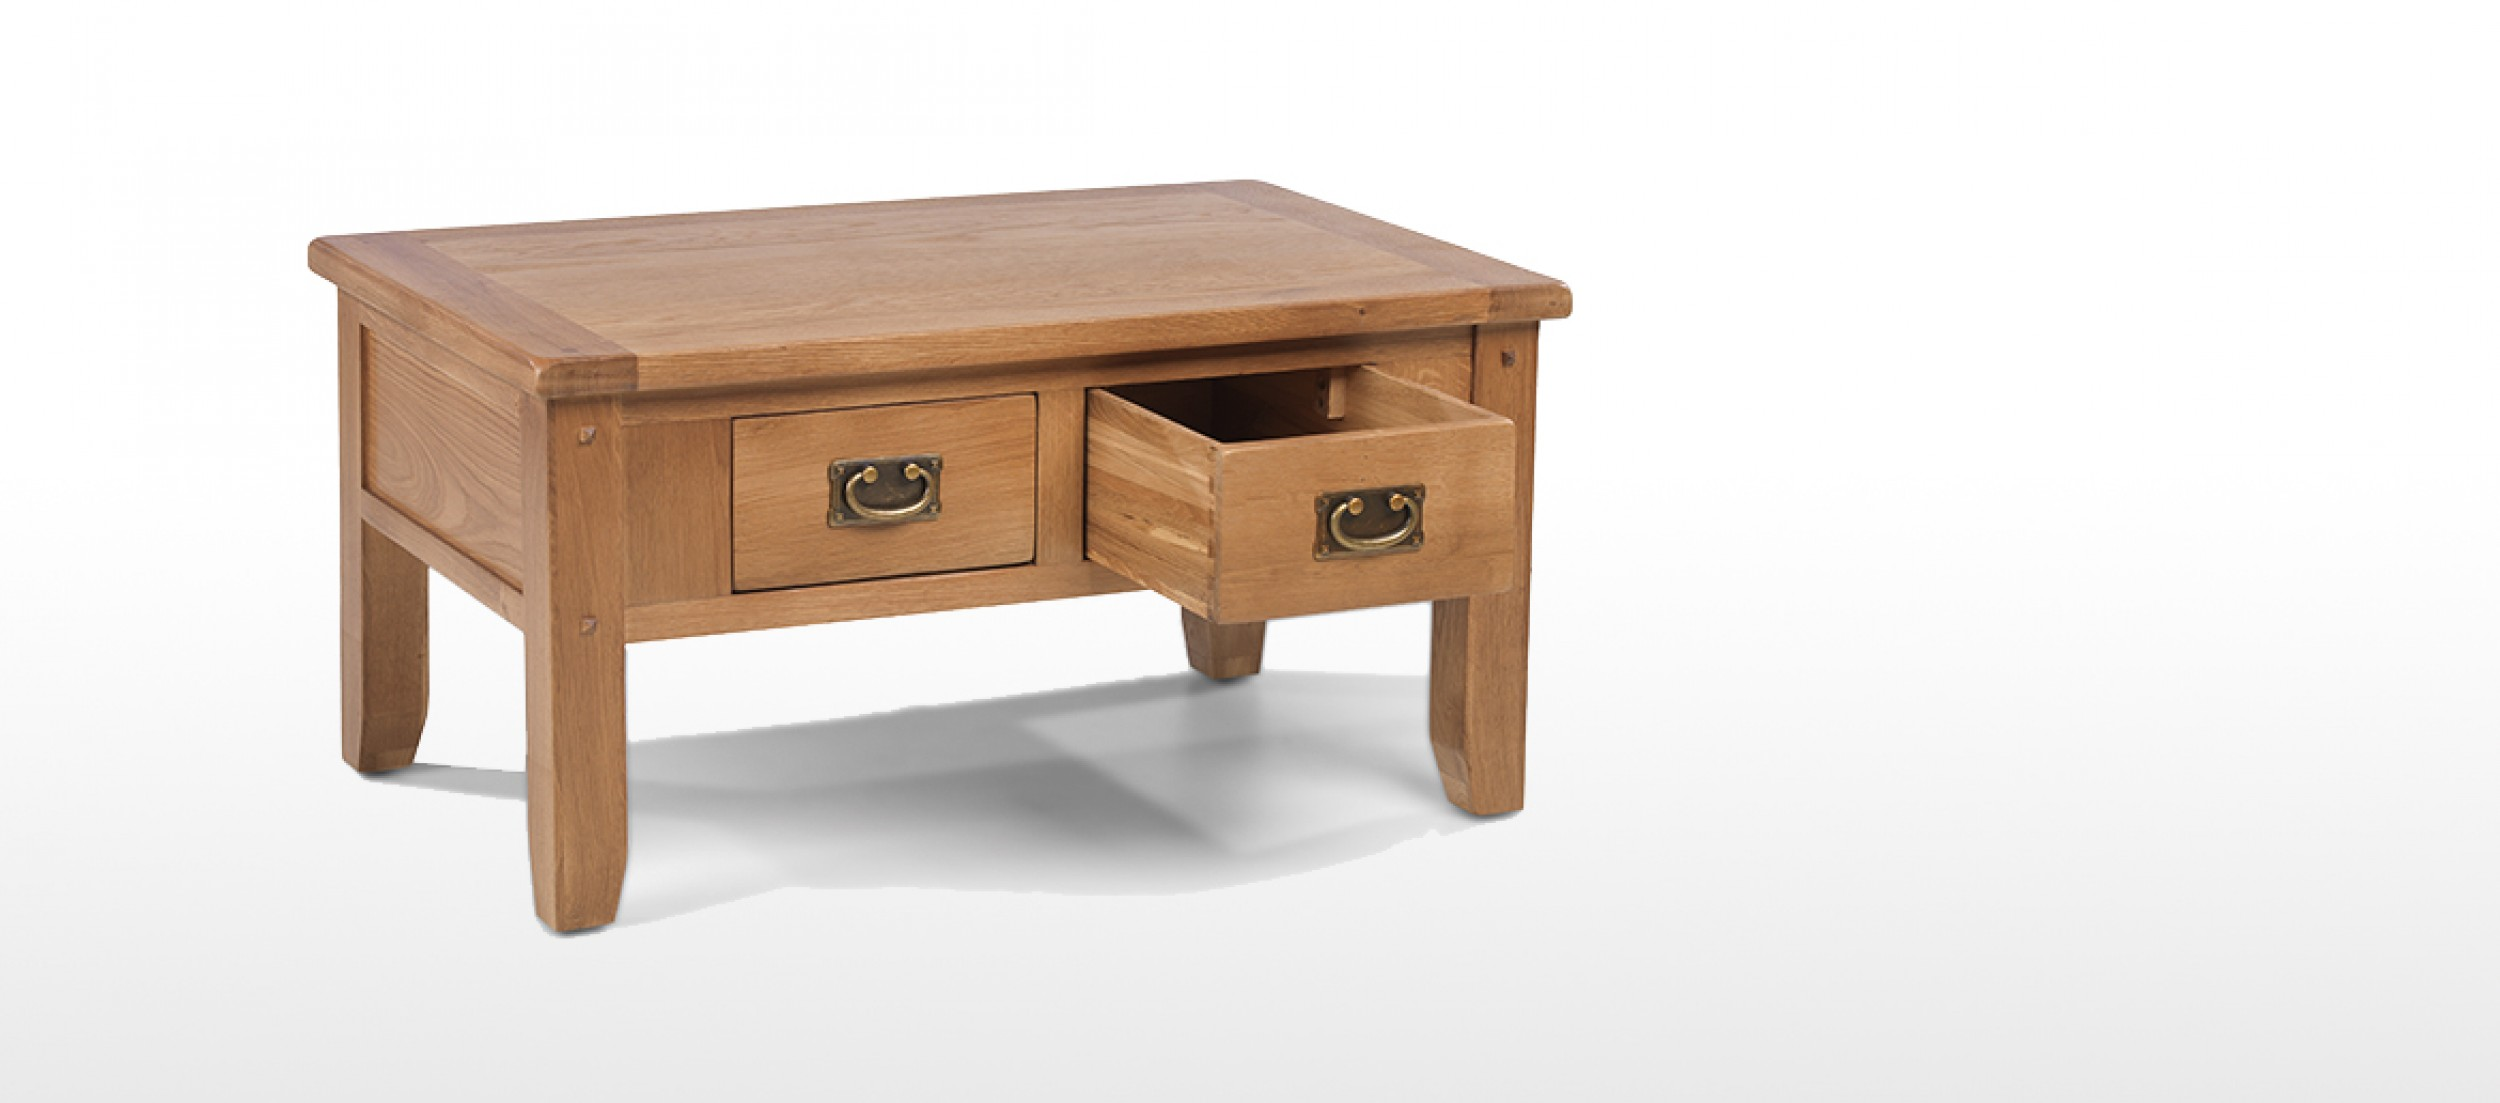 ccc8e3a2a73b Rustic Oak Small 2 Drawer Coffee Table Quercus Living